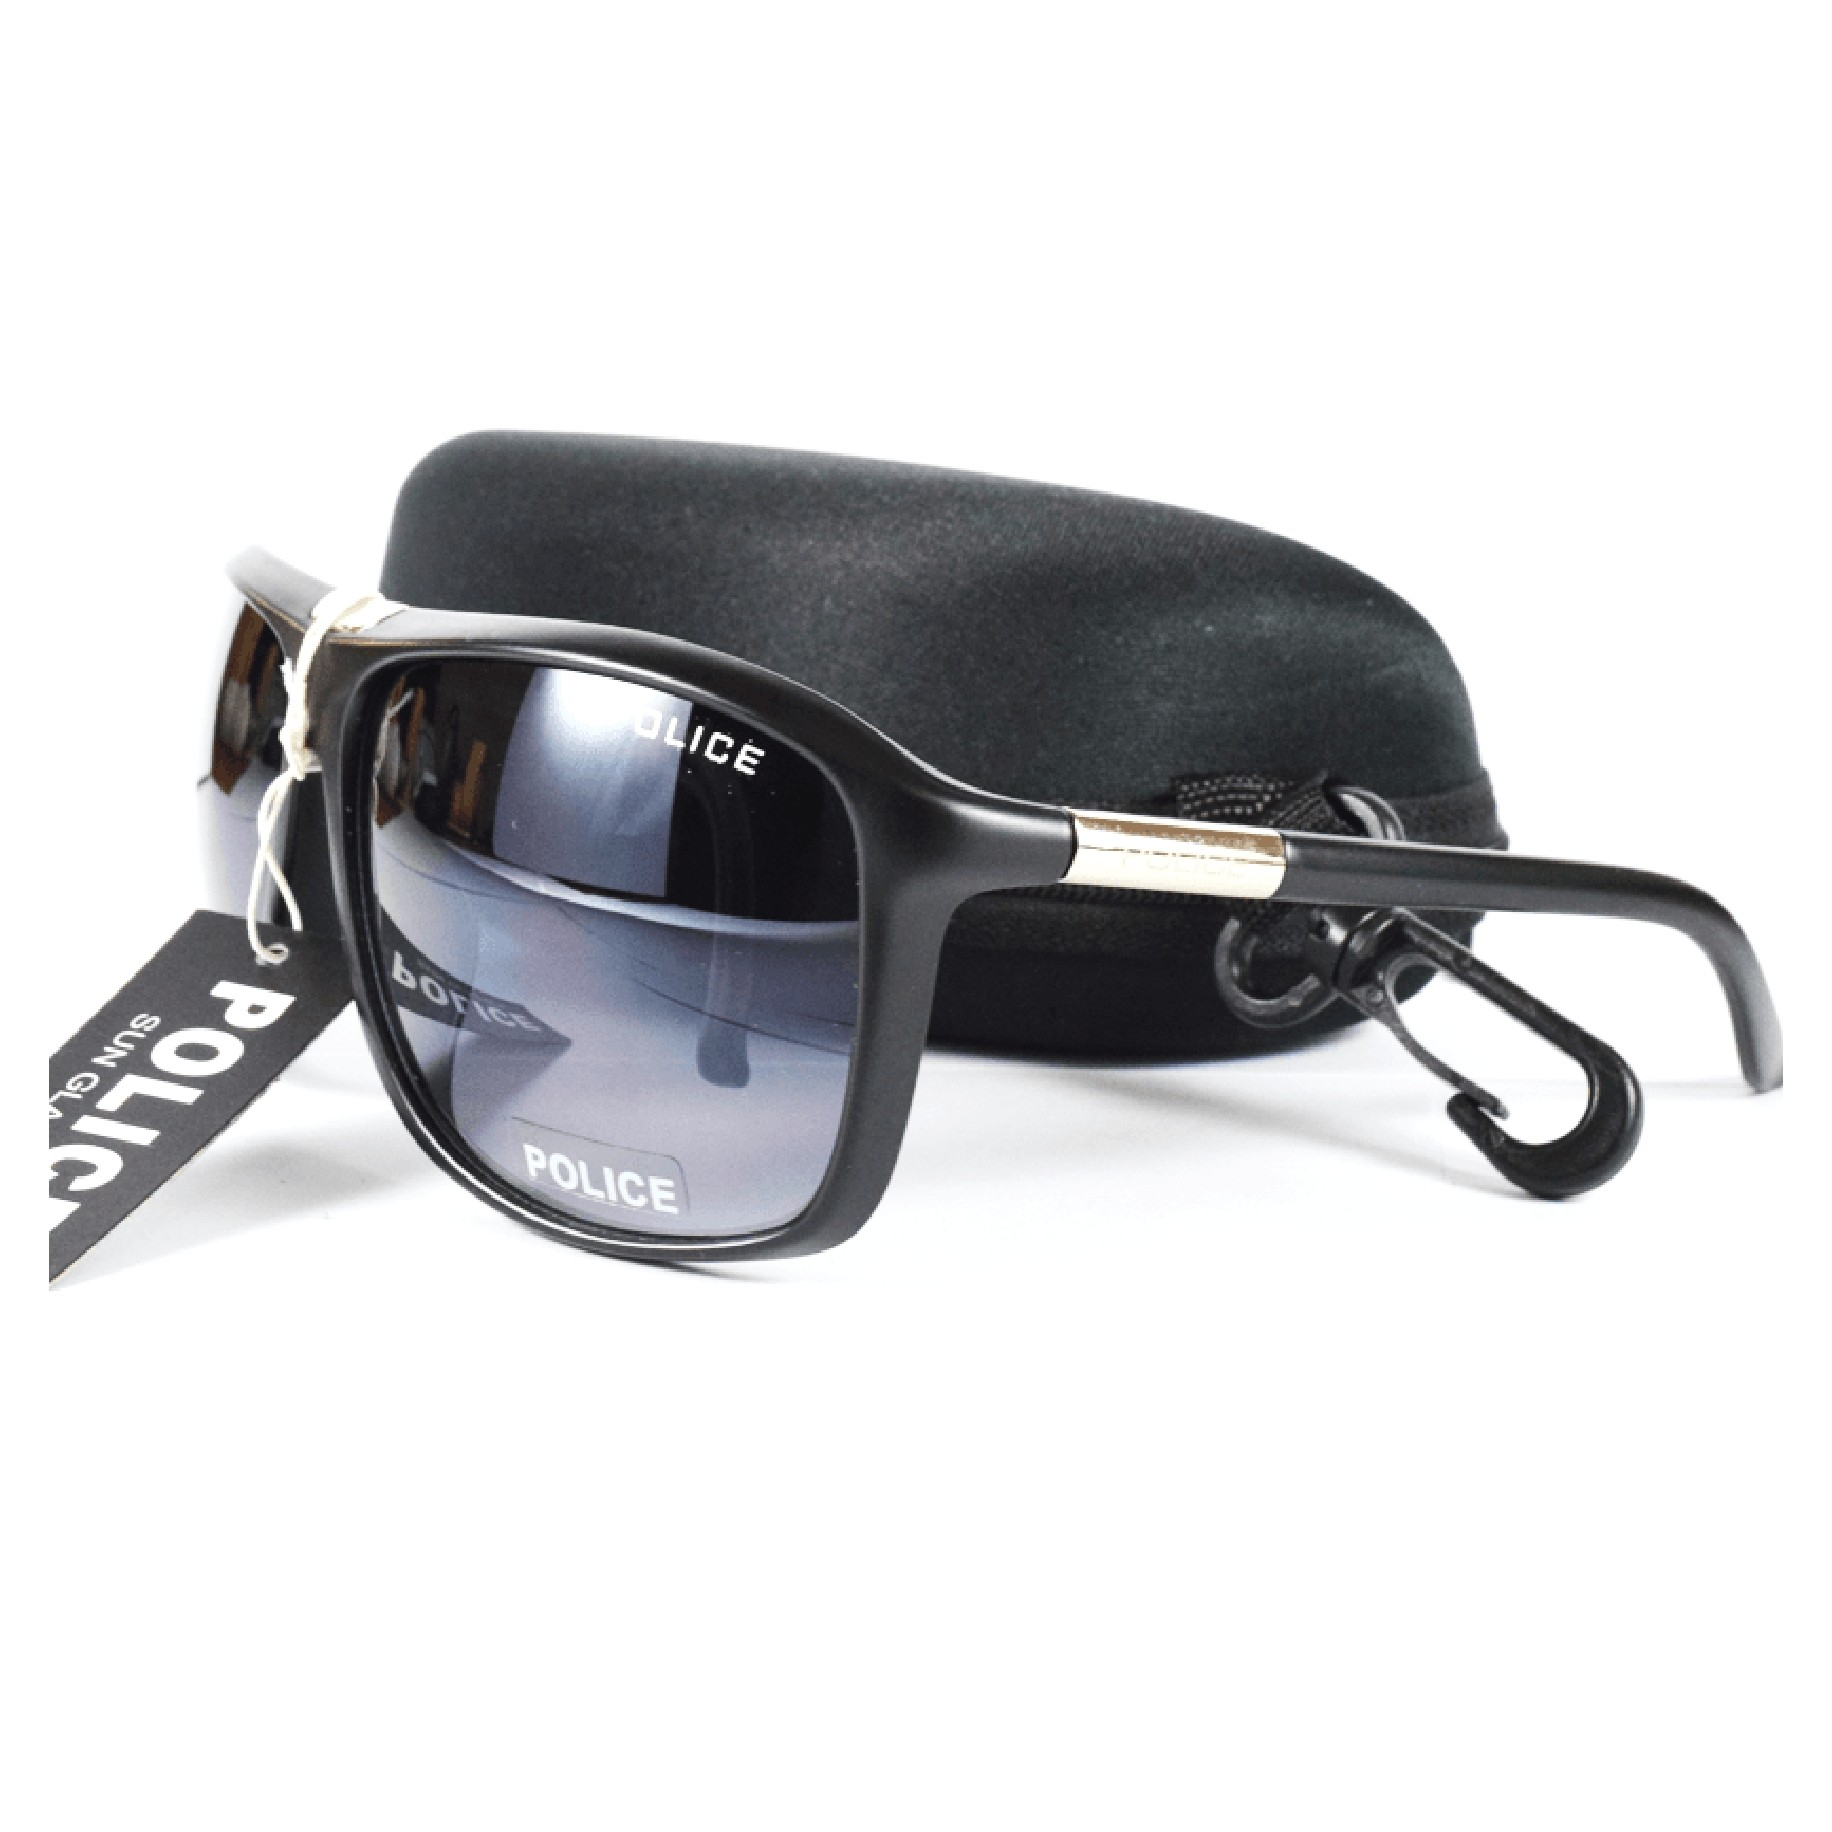 Police Black Shades Aviator Top Quality Sunglass MS003 large 2